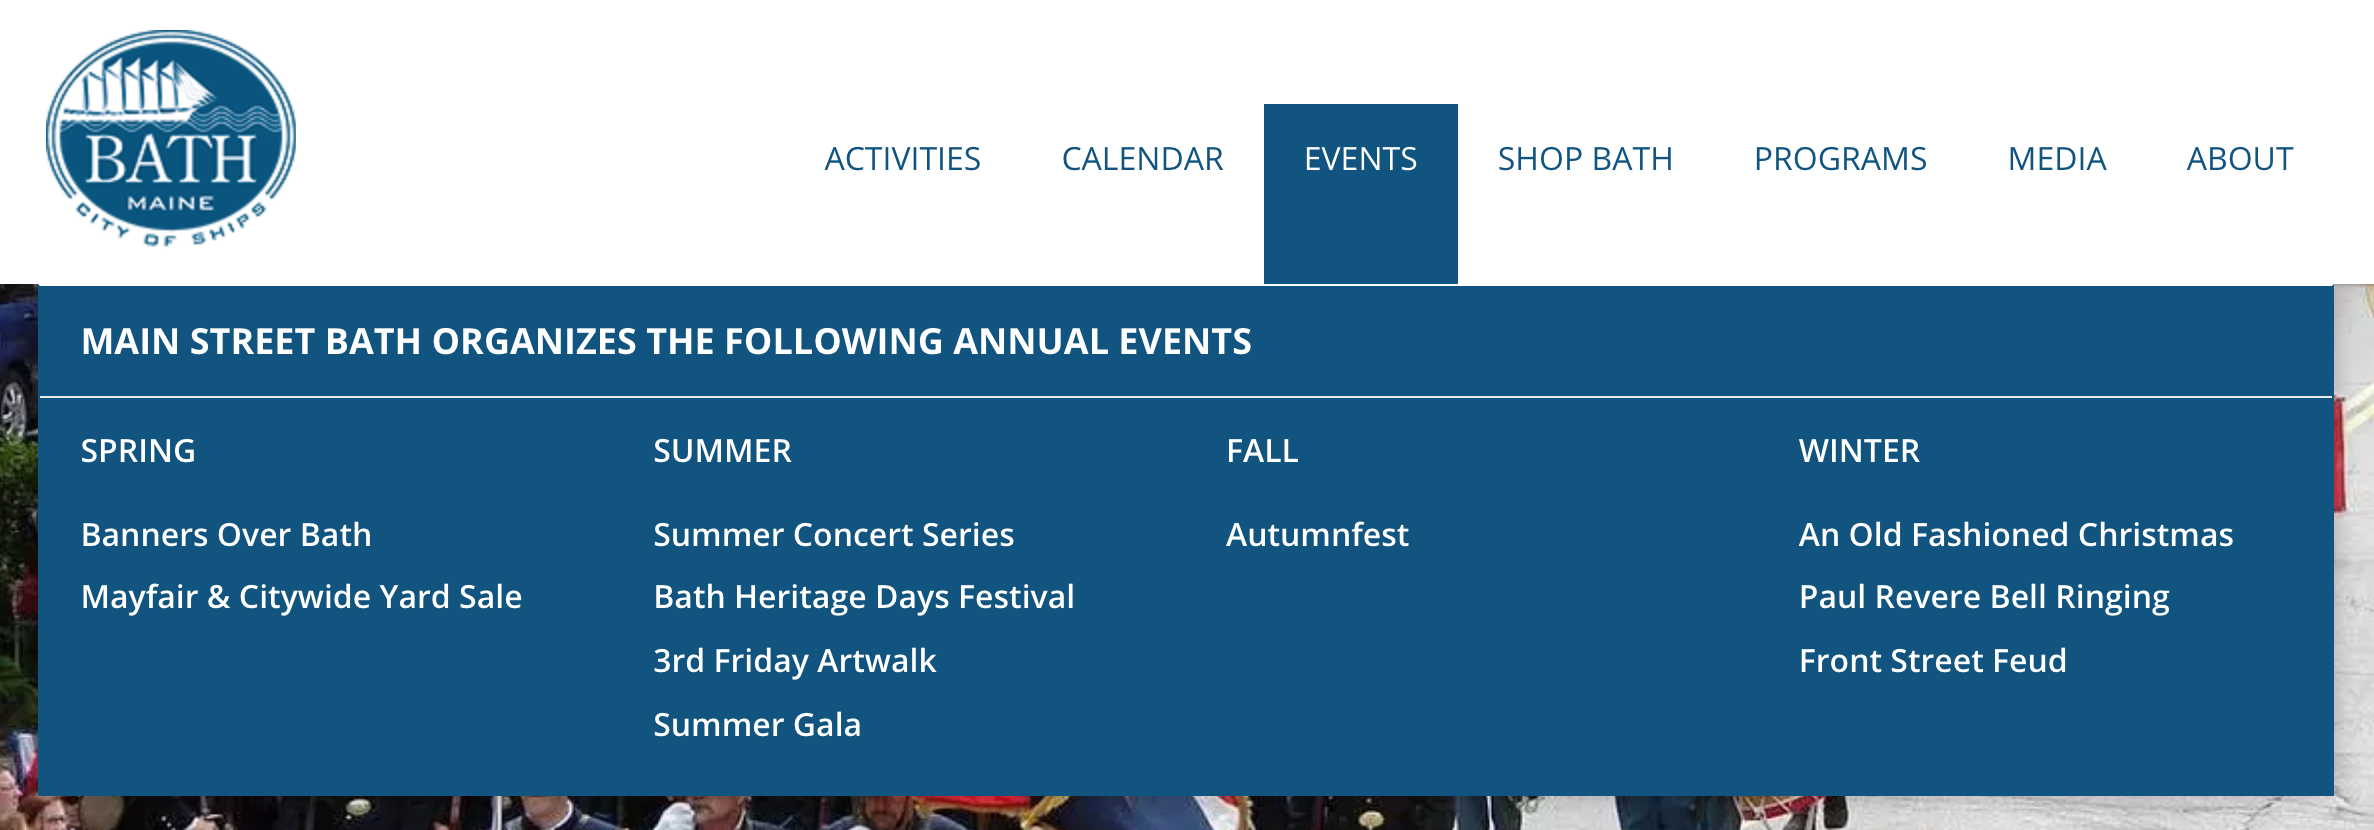 Events featured in the main nav of visitbath.com